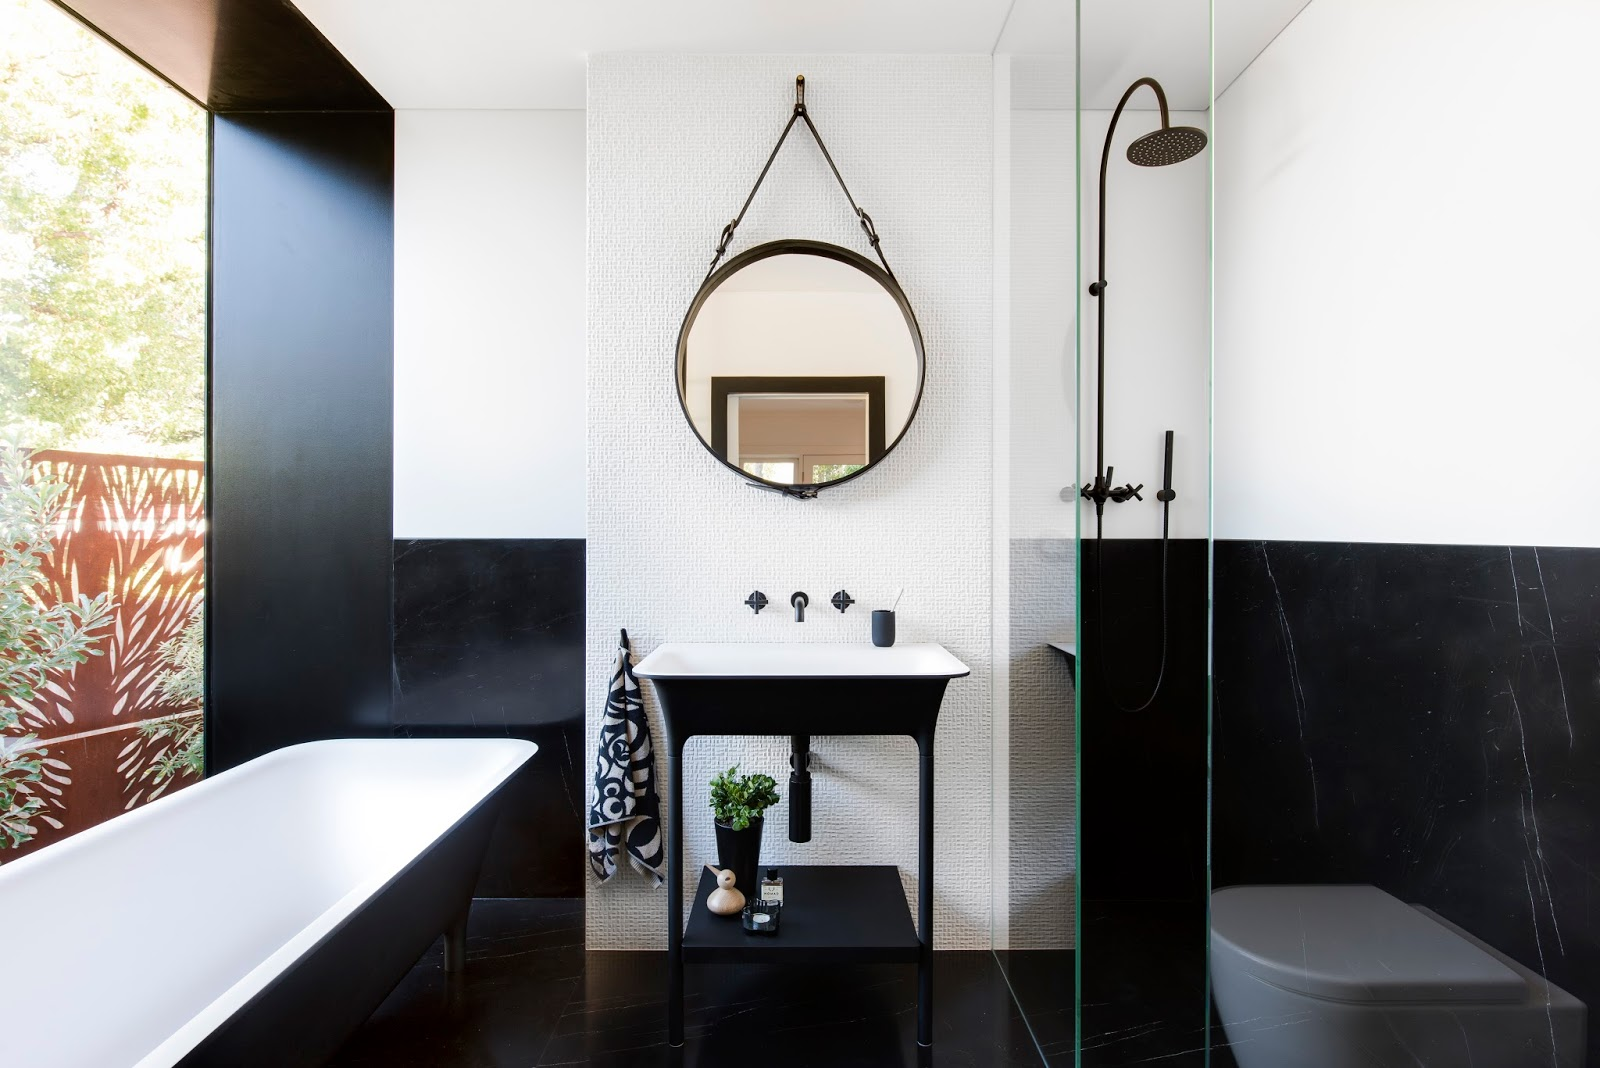 Minosa: Bathroom - The balance of Black & White